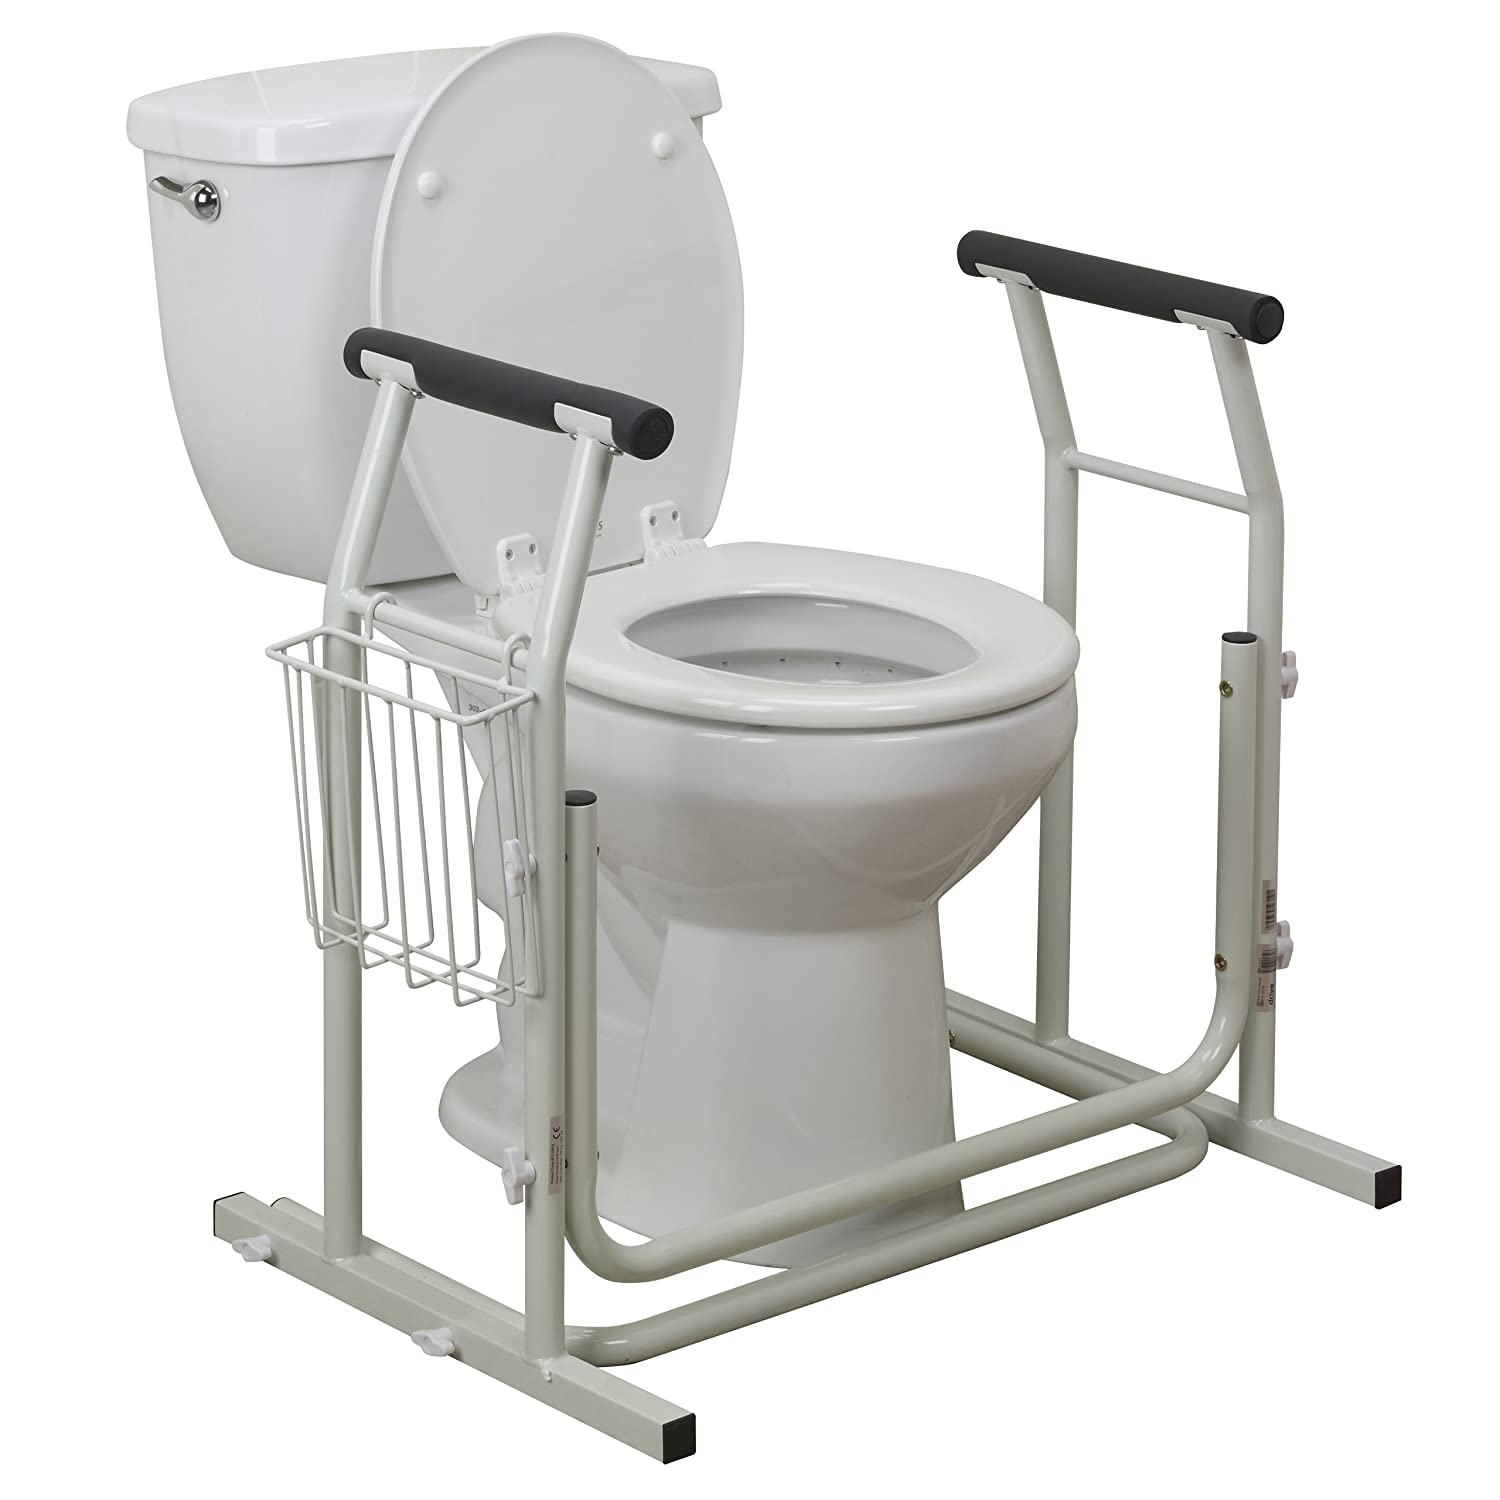 Amazon.com: Drive Medical Stand Alone Toilet Safety Rail, White ...